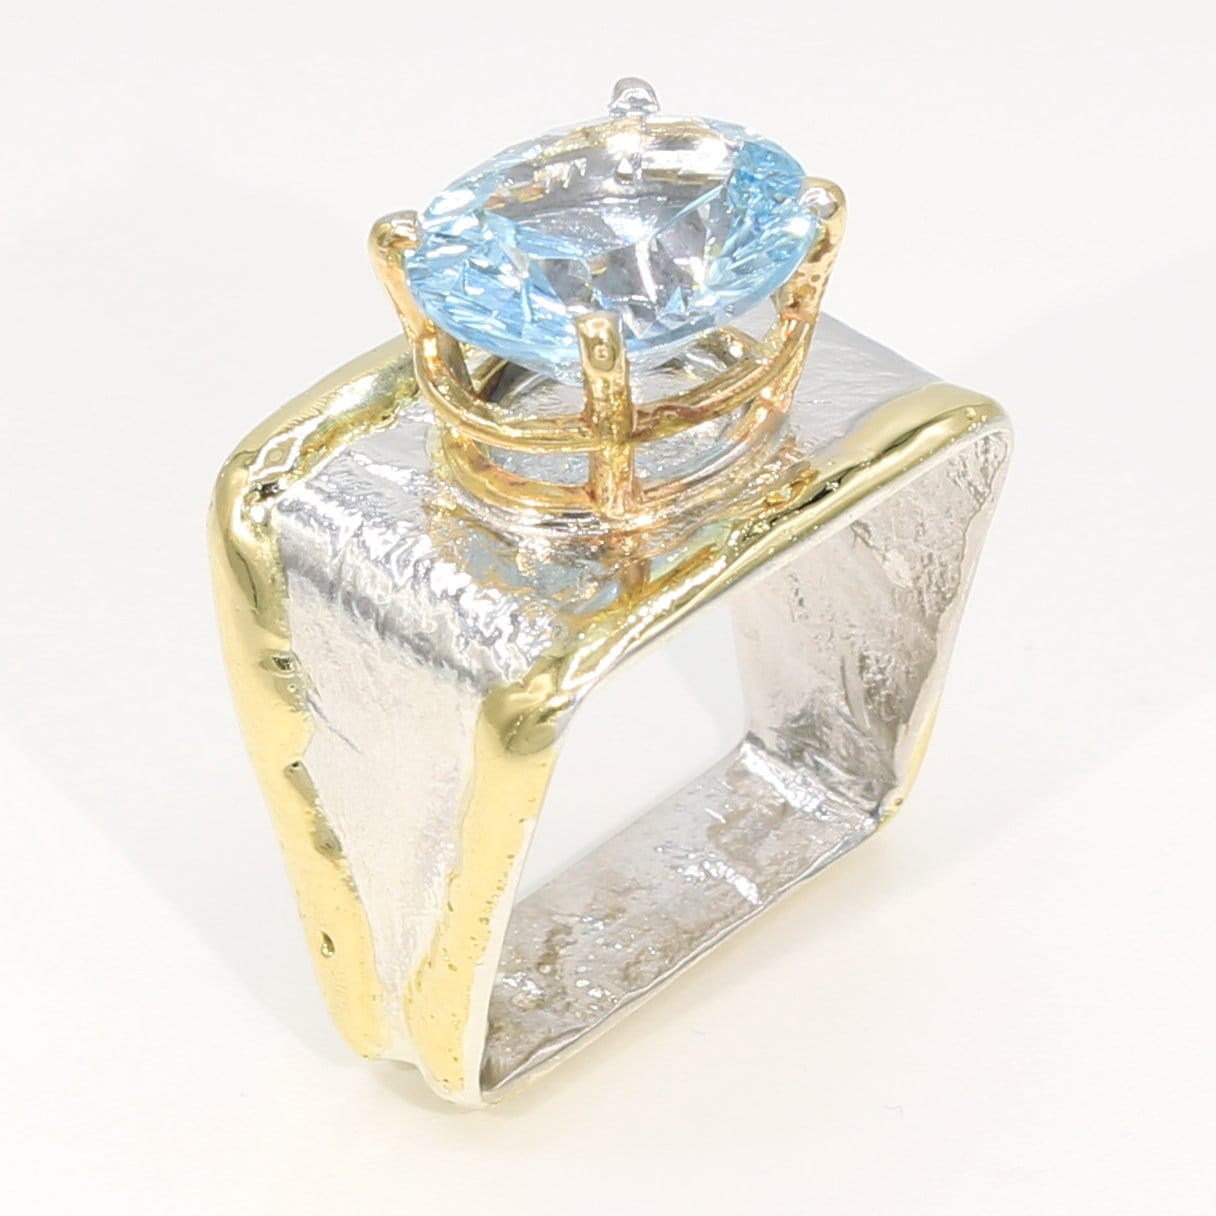 14K Gold & Crystalline Silver Sky Blue Topaz Ring - 35942-Fusion Designs-Renee Taylor Gallery